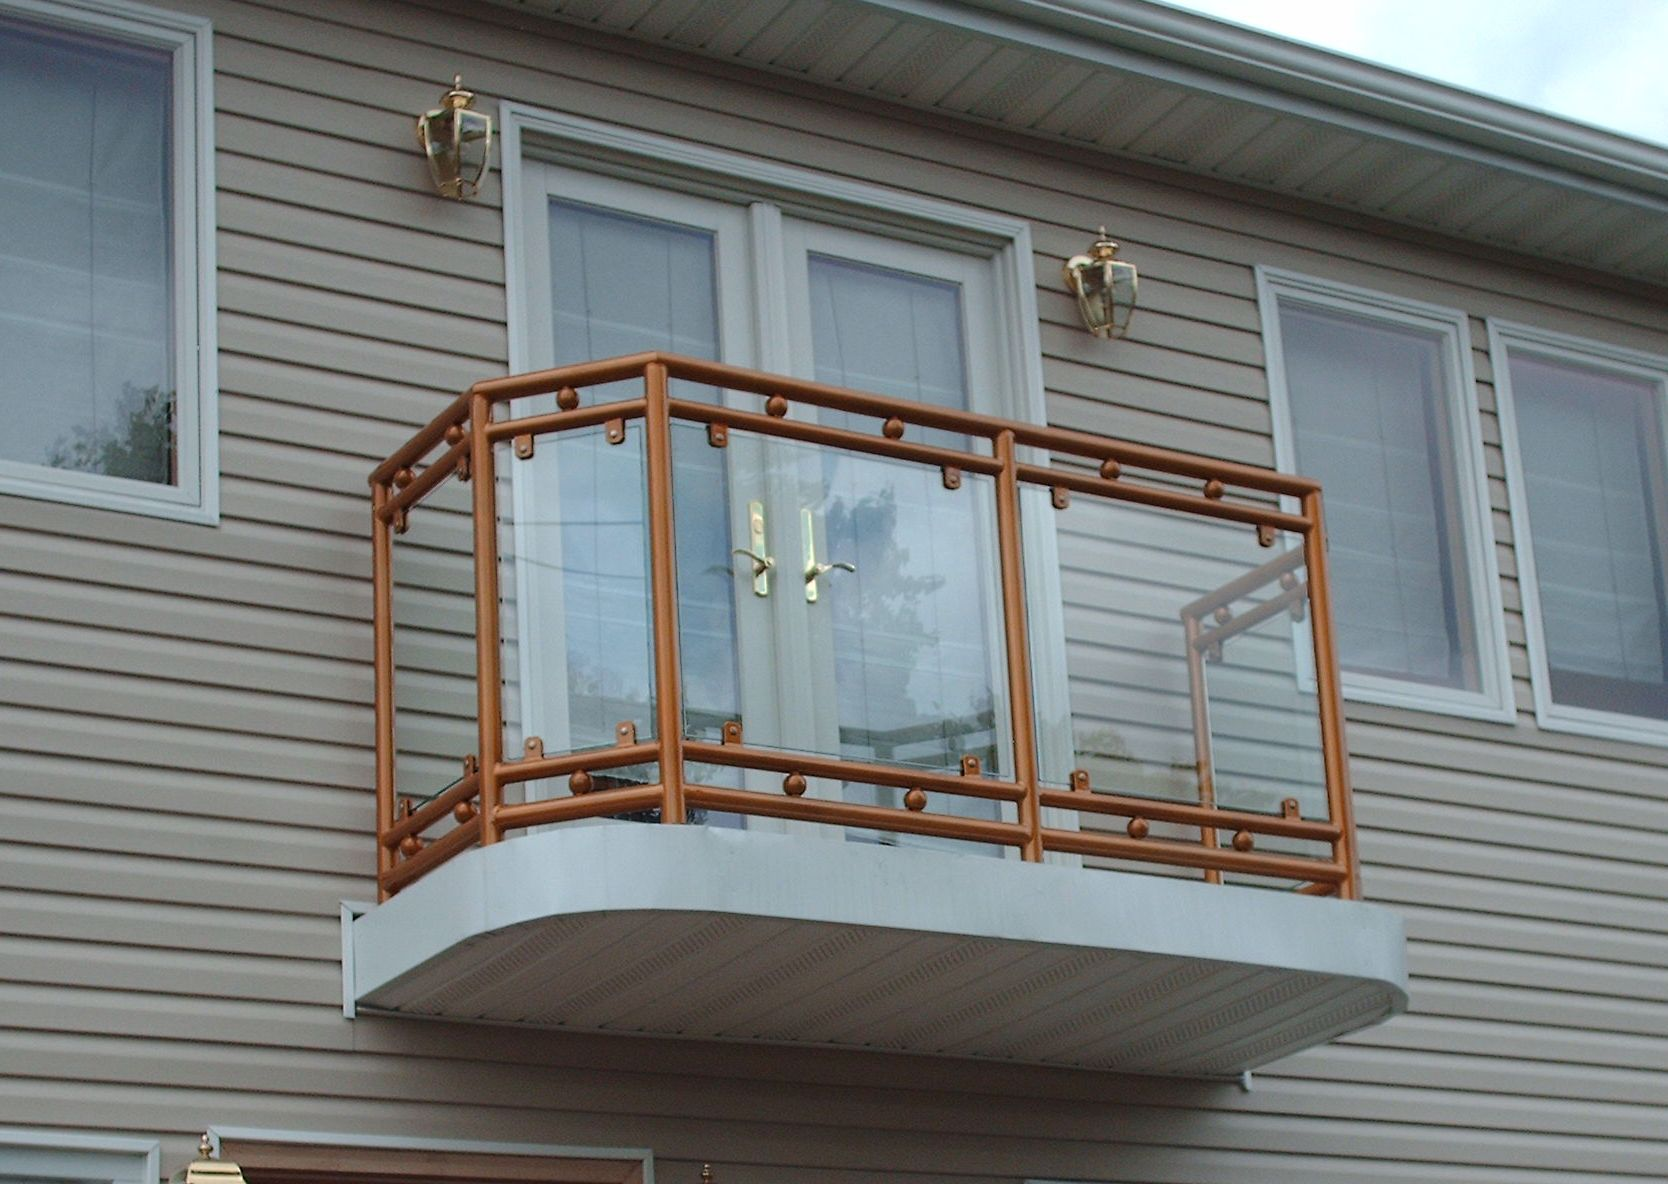 Guardian gate balcony balconies pinterest balcony for Balcony door ideas